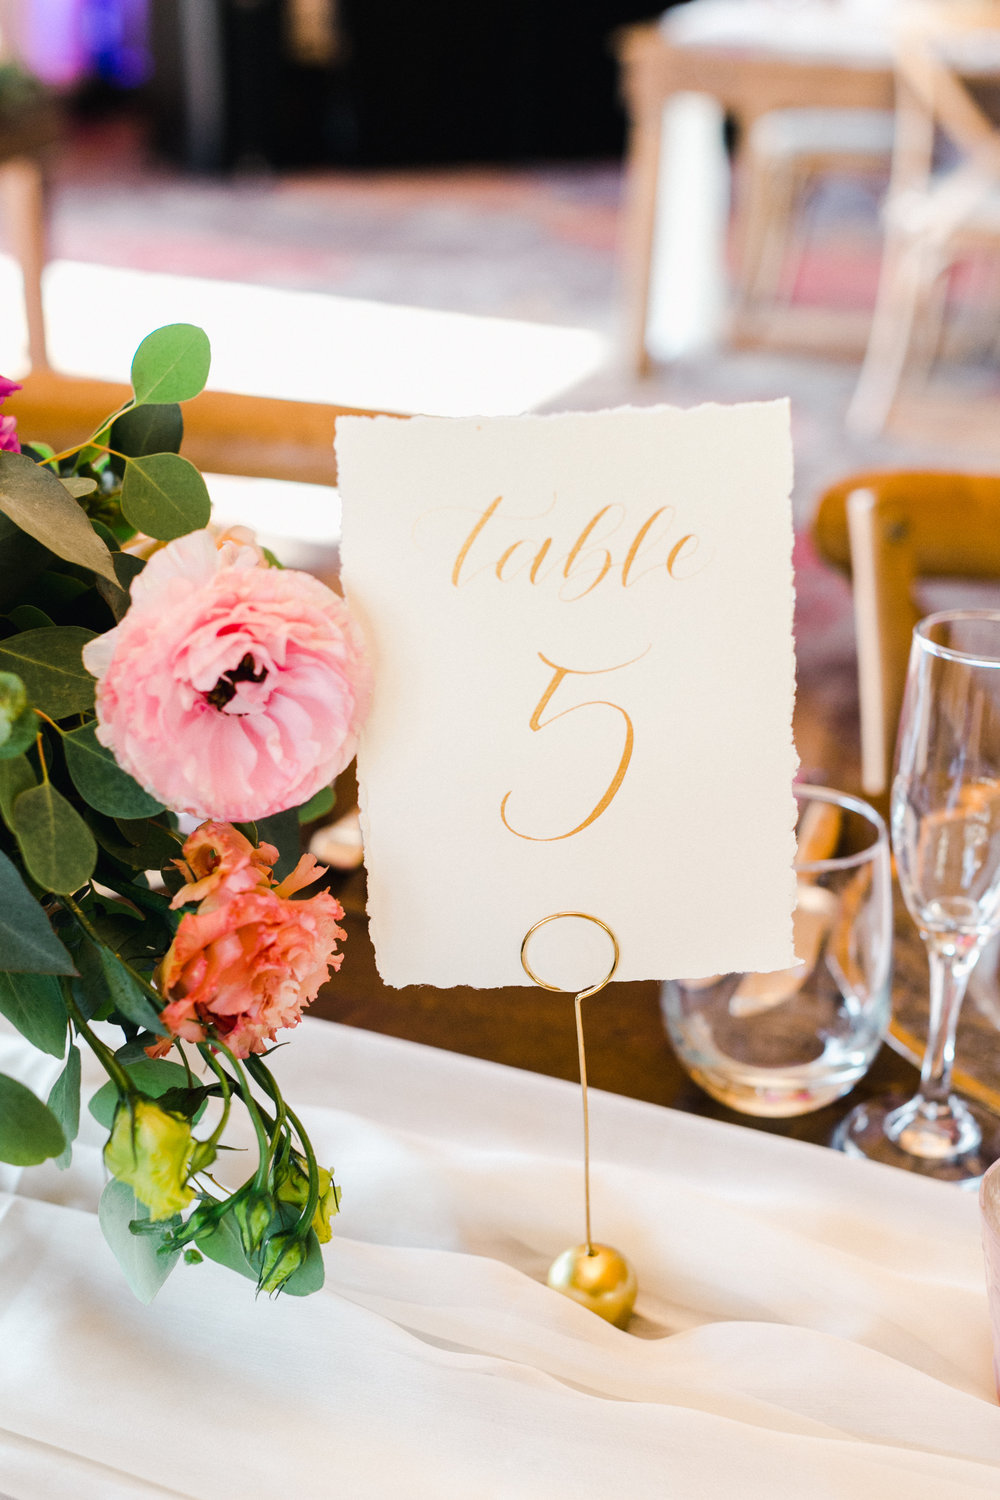 Yosemite wedding table number calligraphy items by paperloveme2.jpg